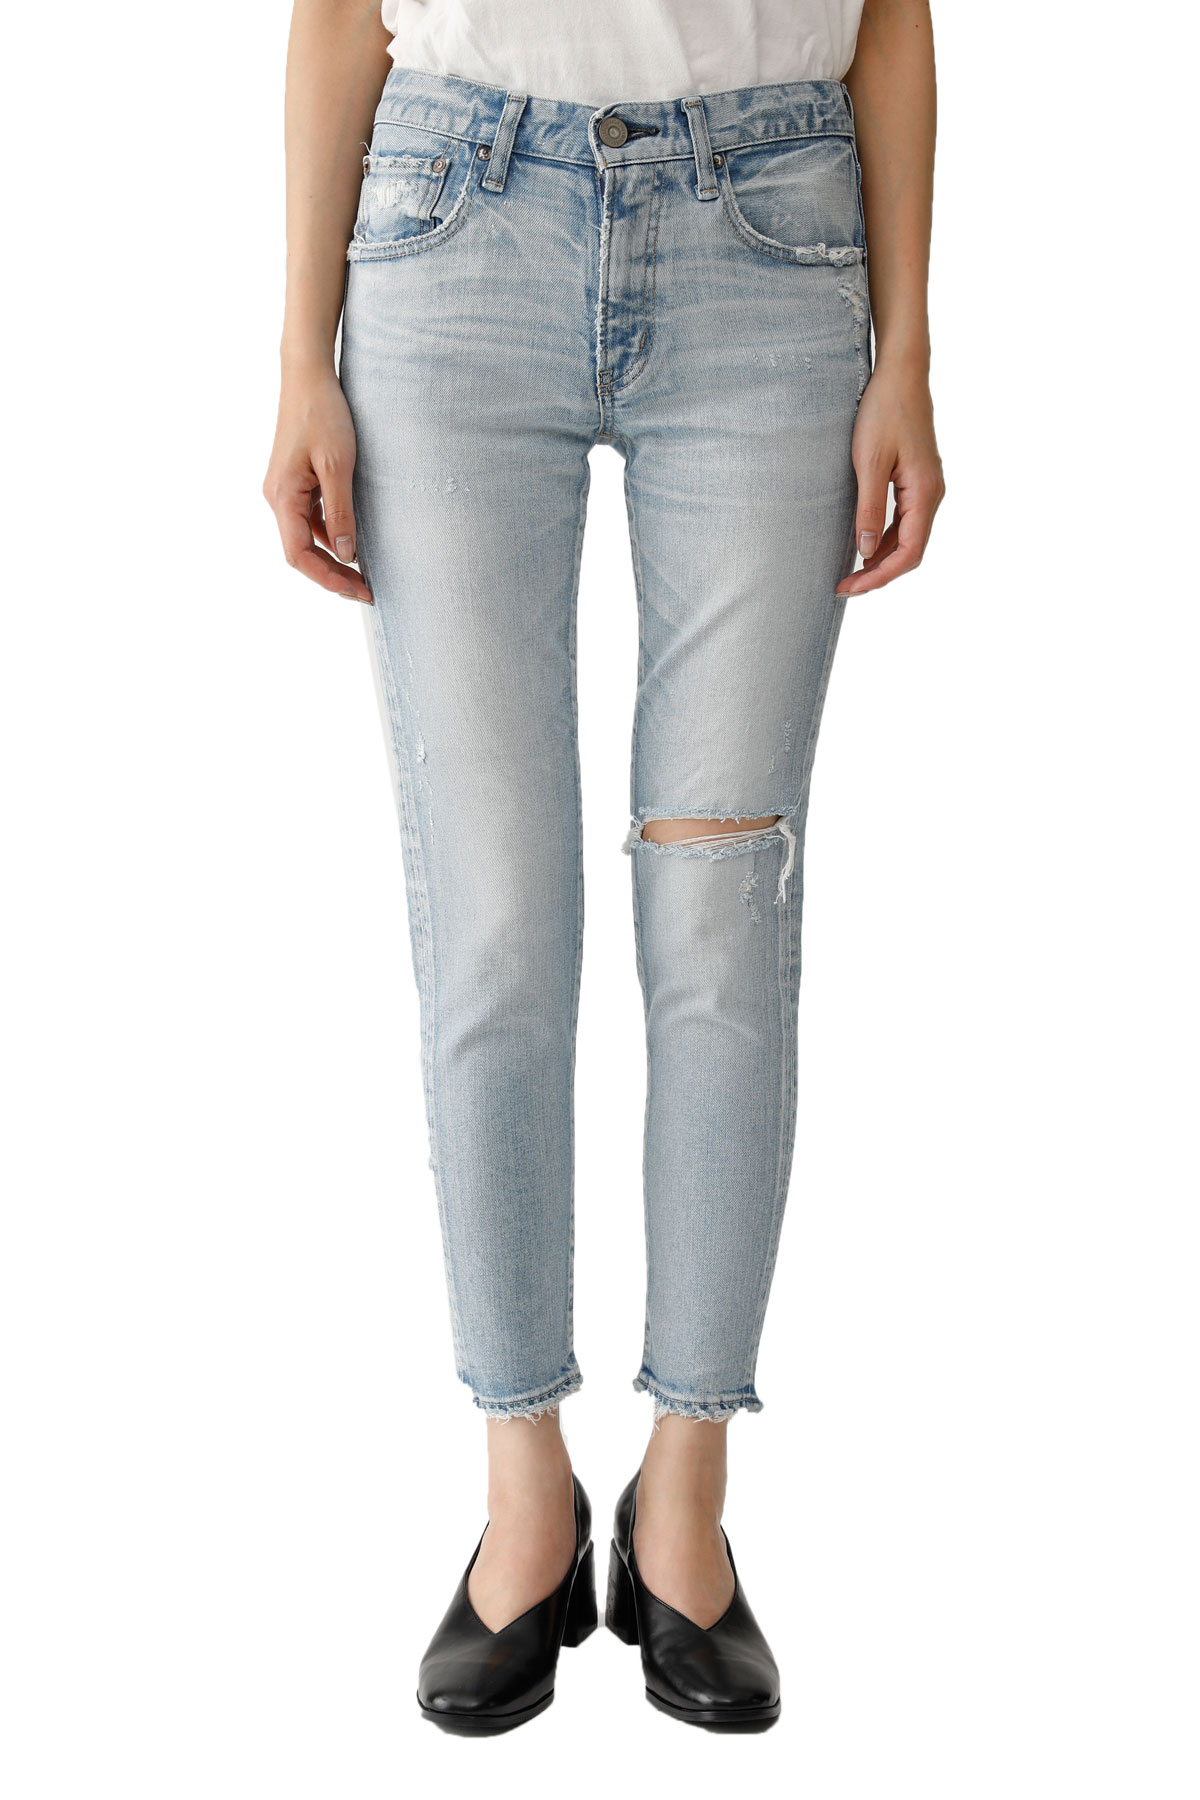 MOUSSY VINTAGE Vivian Distressed Skinny Jeans